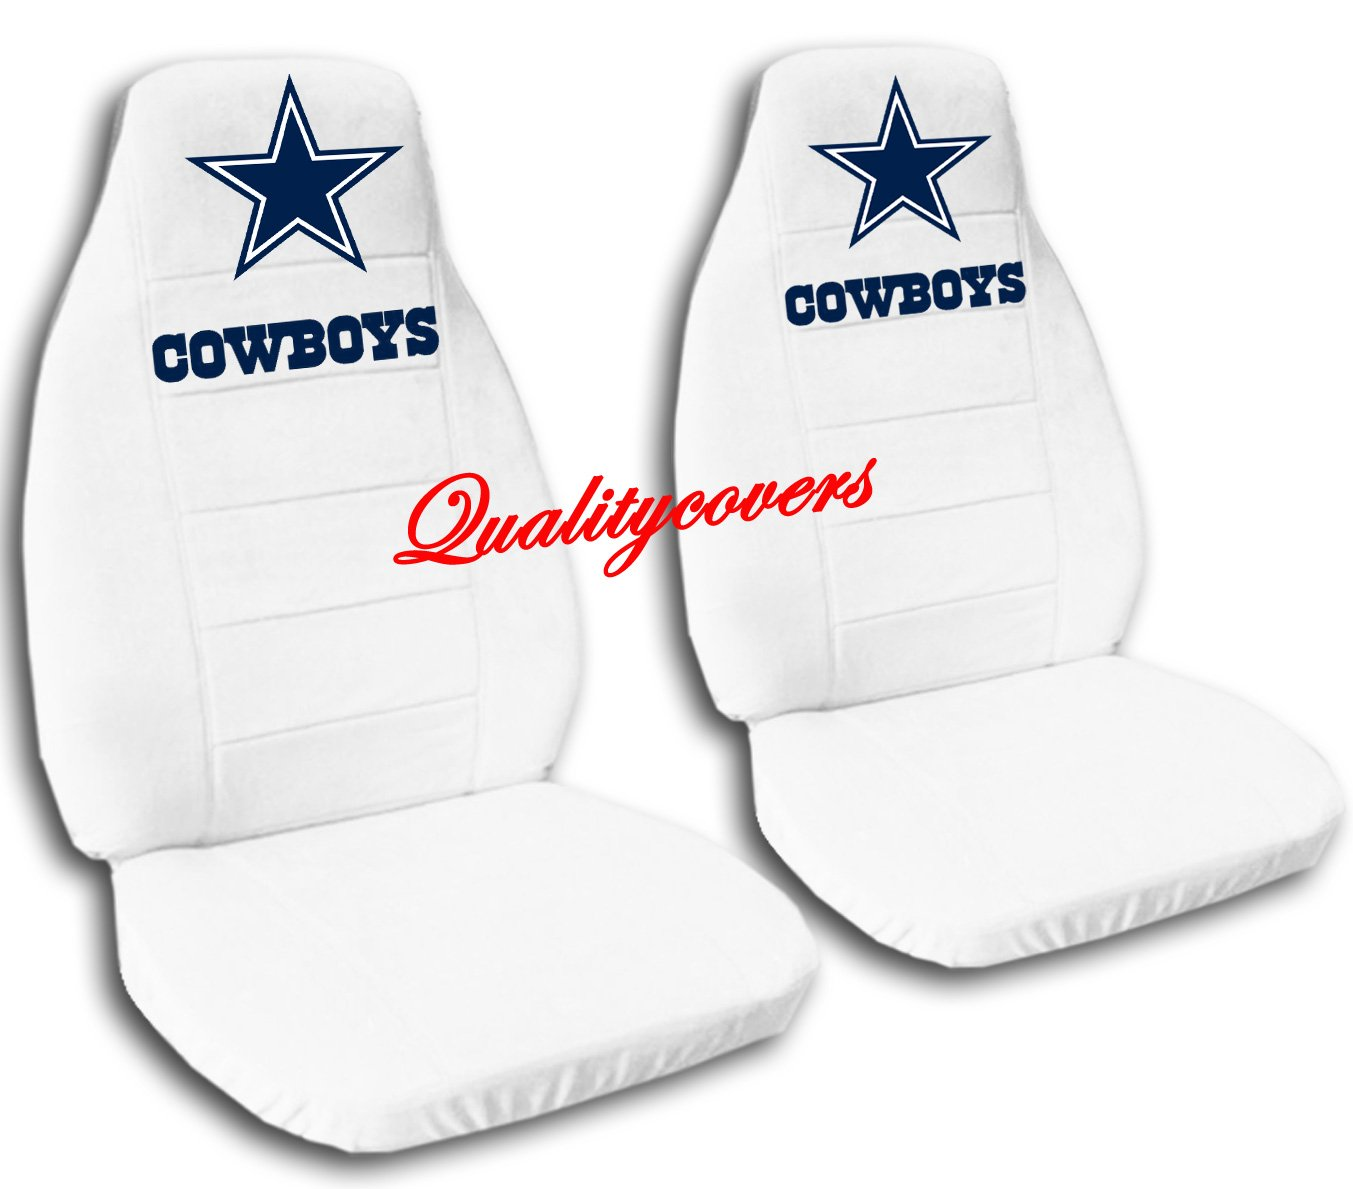 2 White Dallas seat covers for a 2007 to 2012 Chevrolet Silverado. Side airbag friendly.